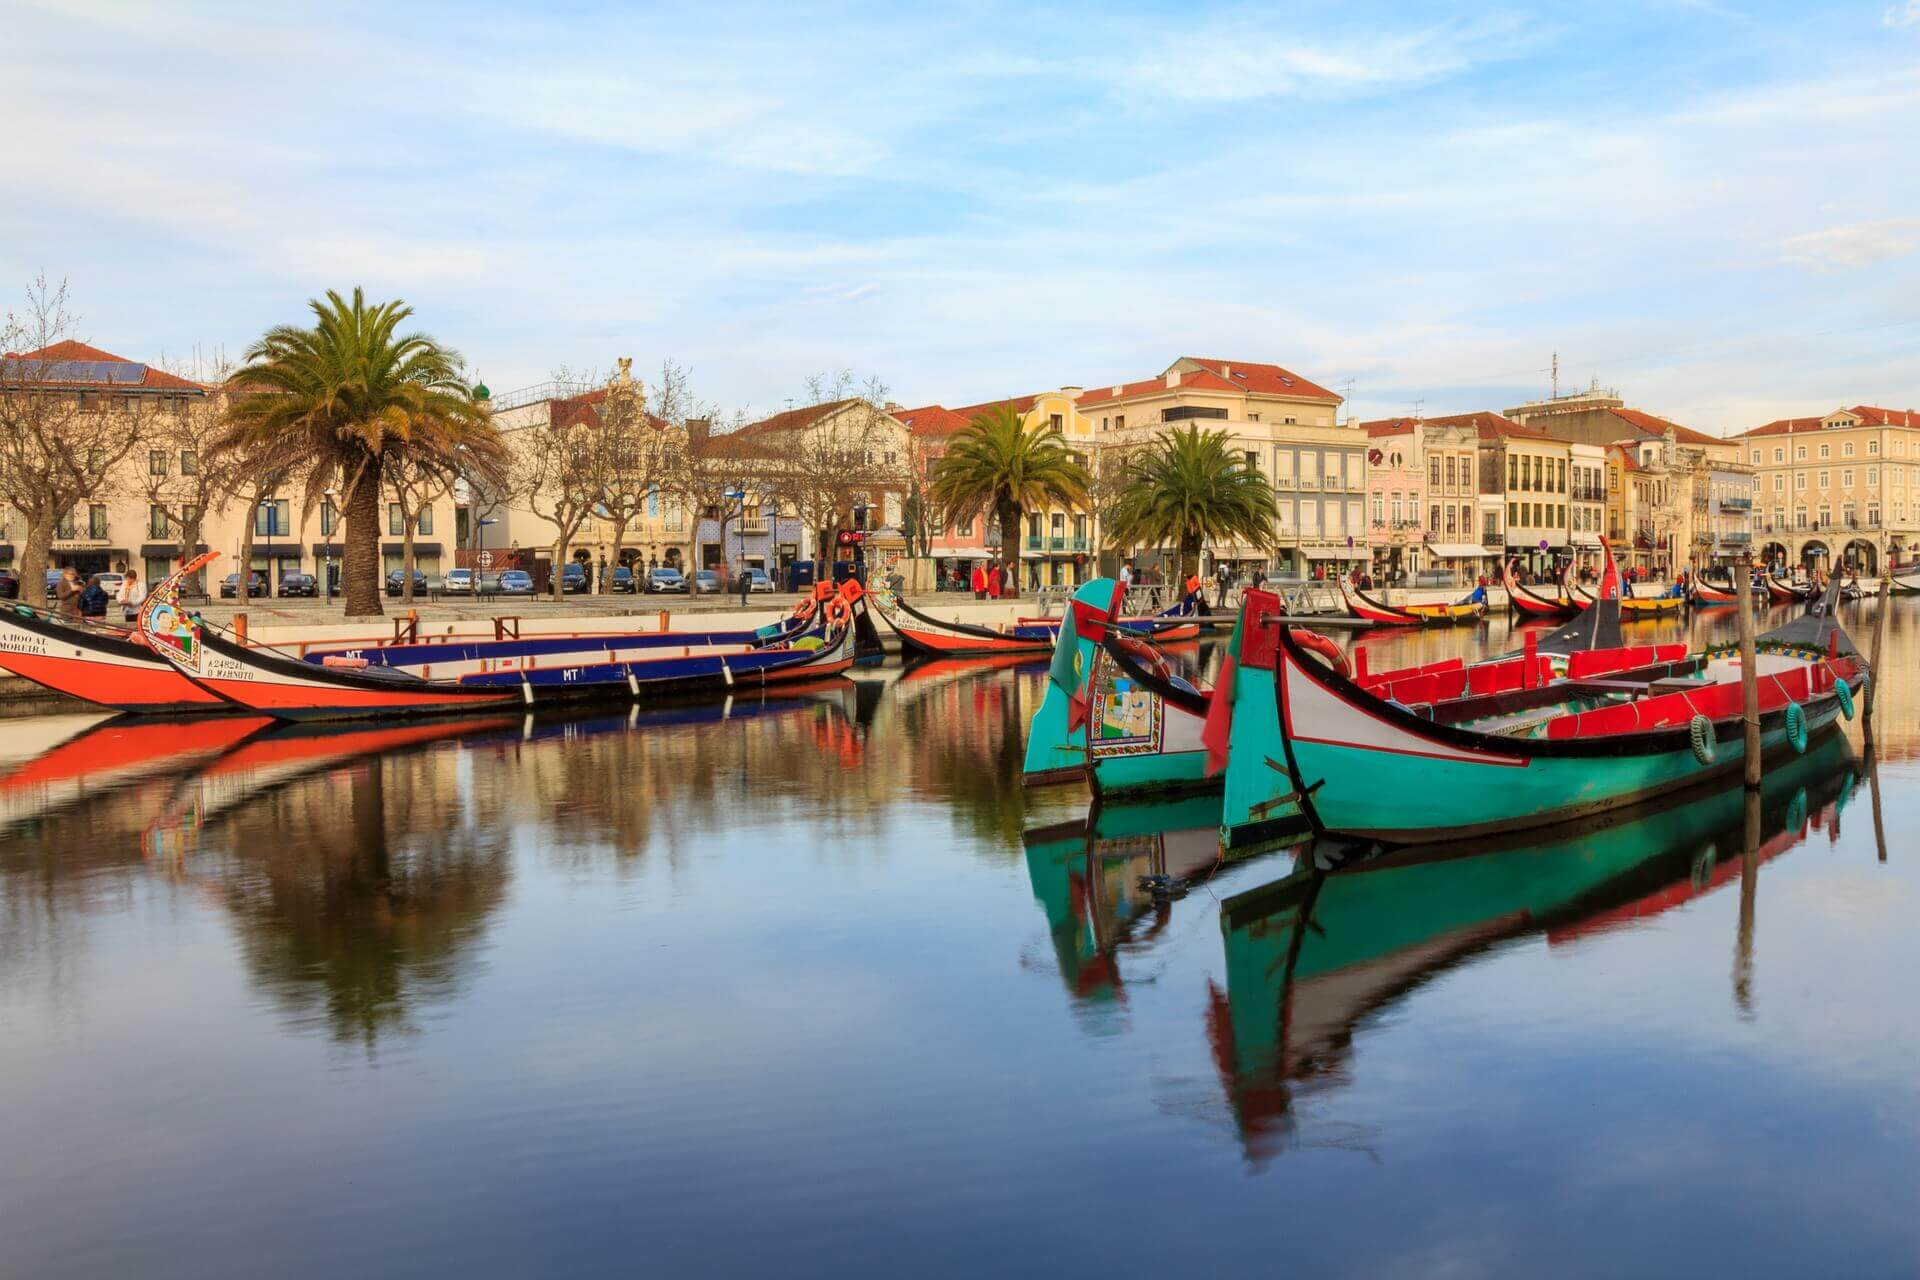 moliceiros boats in the Aveiro canal